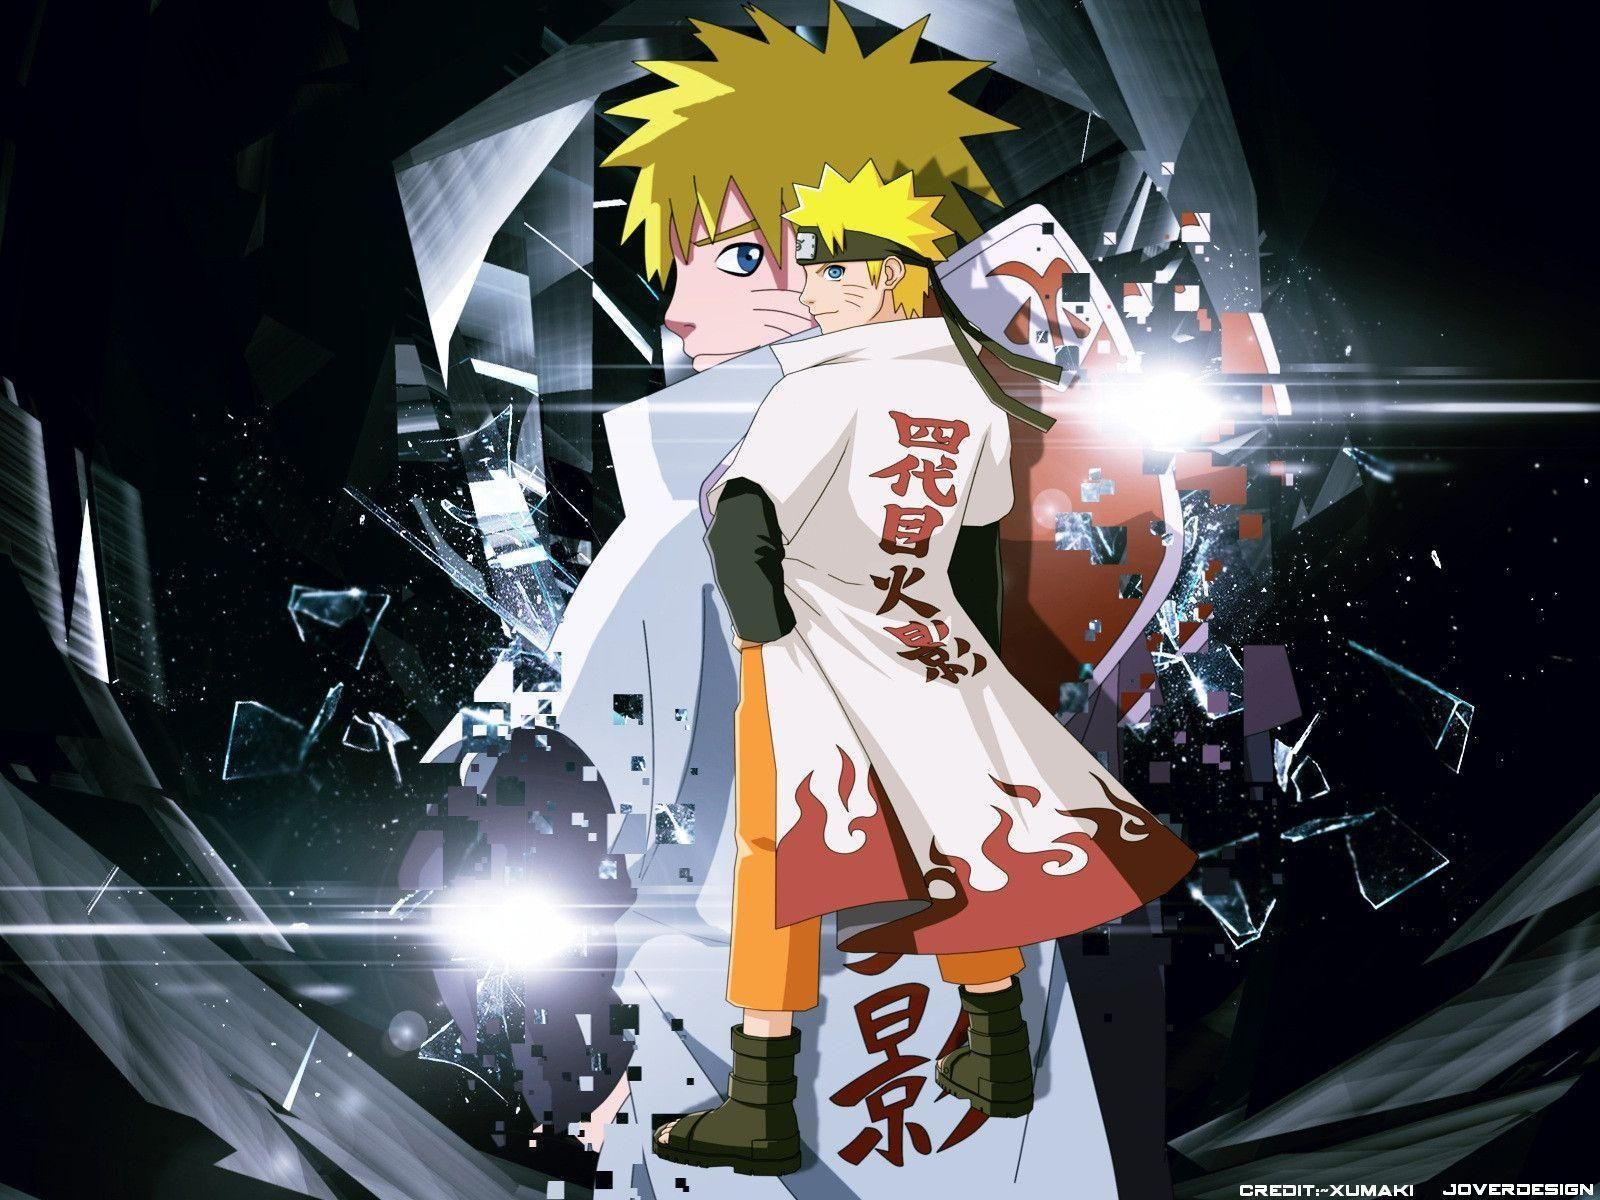 Naruto Hokage Wallpapers Hd Gambar Anime Gambar Anime Meme